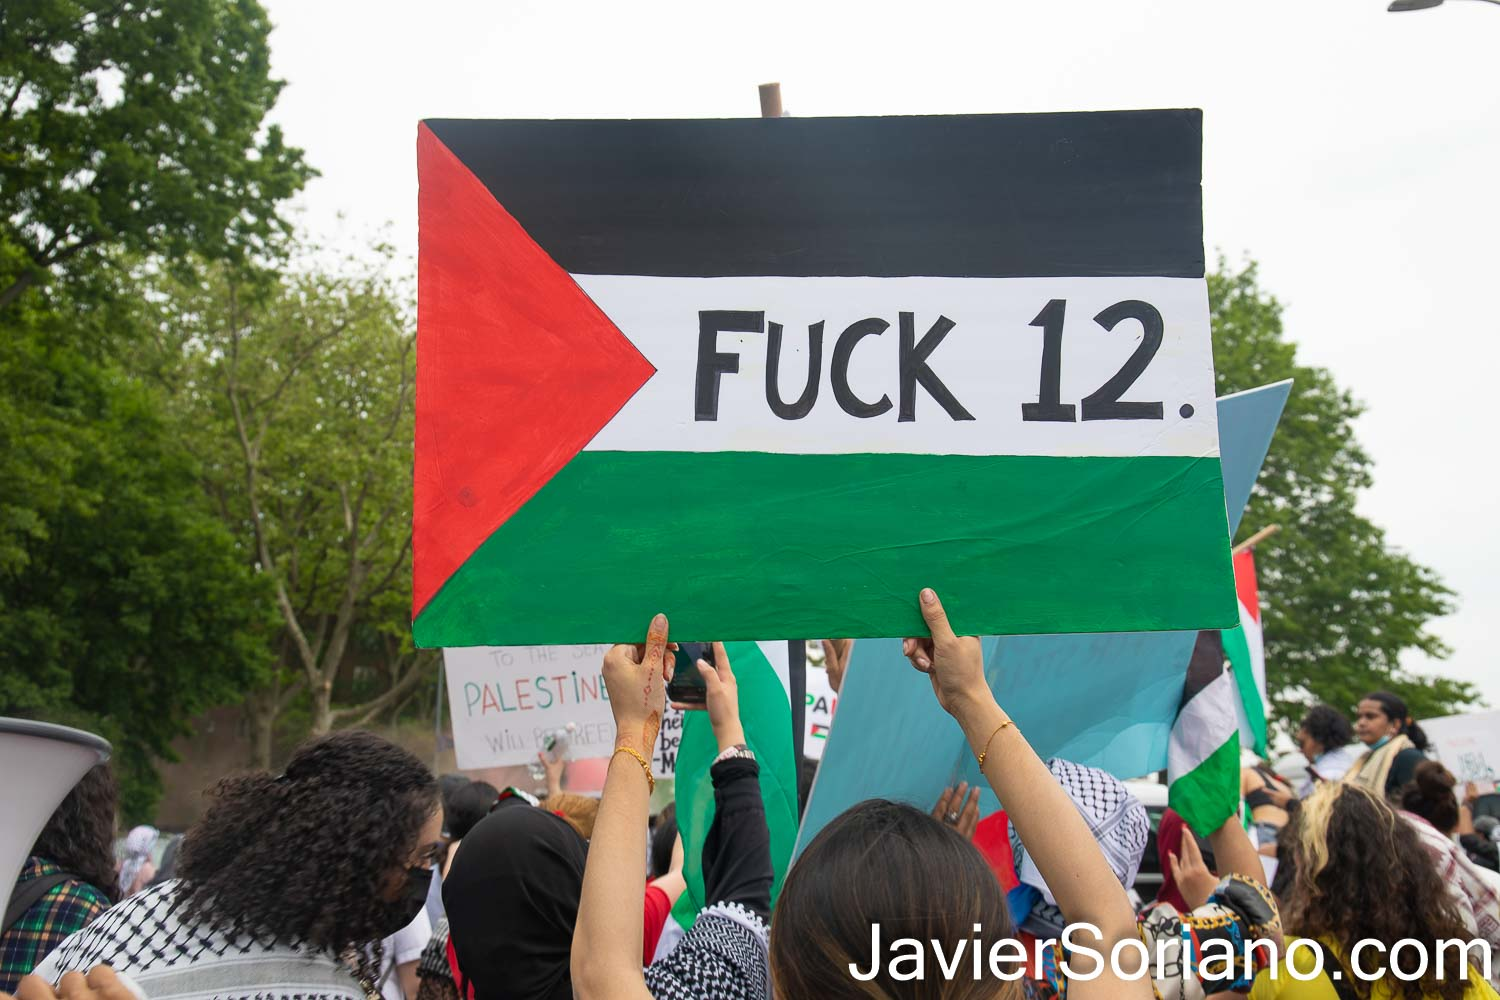 """Saturday, May 22, 2021. New York City -  Thousands of anti-zionist Palestinians, Jews, Native Americans, Latinas, Latinos, Blacks, Asians, and others rallied and marched to DEFEND PALESTINE.   Demonstrators gathered at Queens BLVD and 45 Street in the borough of Queens. After the rally, they marched to Astoria, Jackson Heights, etc. in the same  borough of Queens.   THIS PHOTO: A female protester with a sign that reads: """"FUCK 12"""" (the phrase and slang """"Fuck 12"""" or """"Fuck Twelve""""  basically means fuck the police, but more specifically it's means fuck the police drug unit).  Photo by Javier Soriano/www.JavierSoriano.com"""